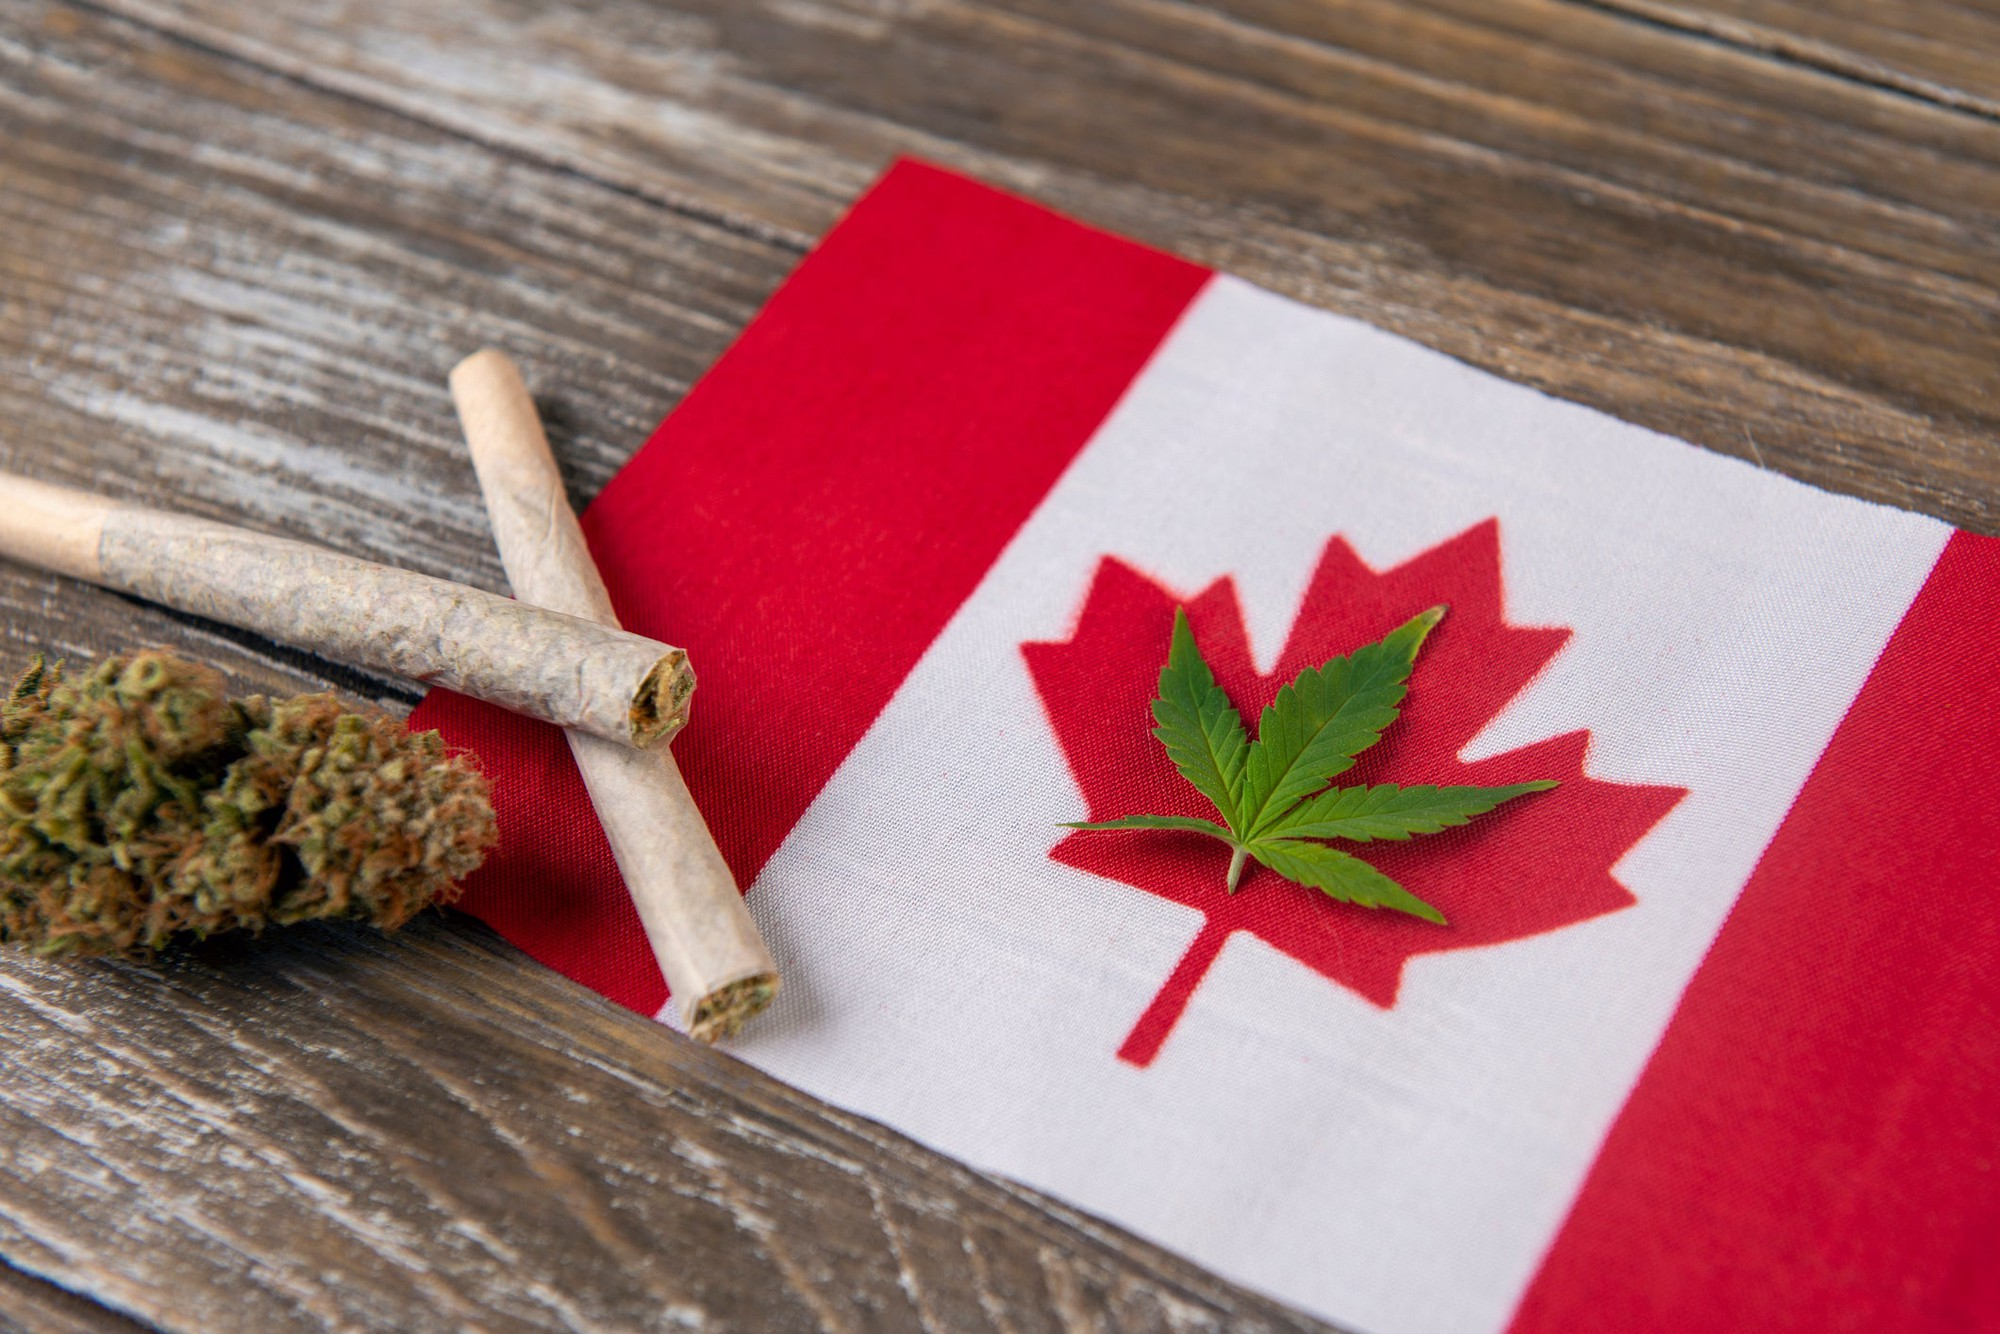 A cannabis leaf laid within the outline of the Canadian flag's red maple leaf, with rolled joints and a cannabis bud laid next to it